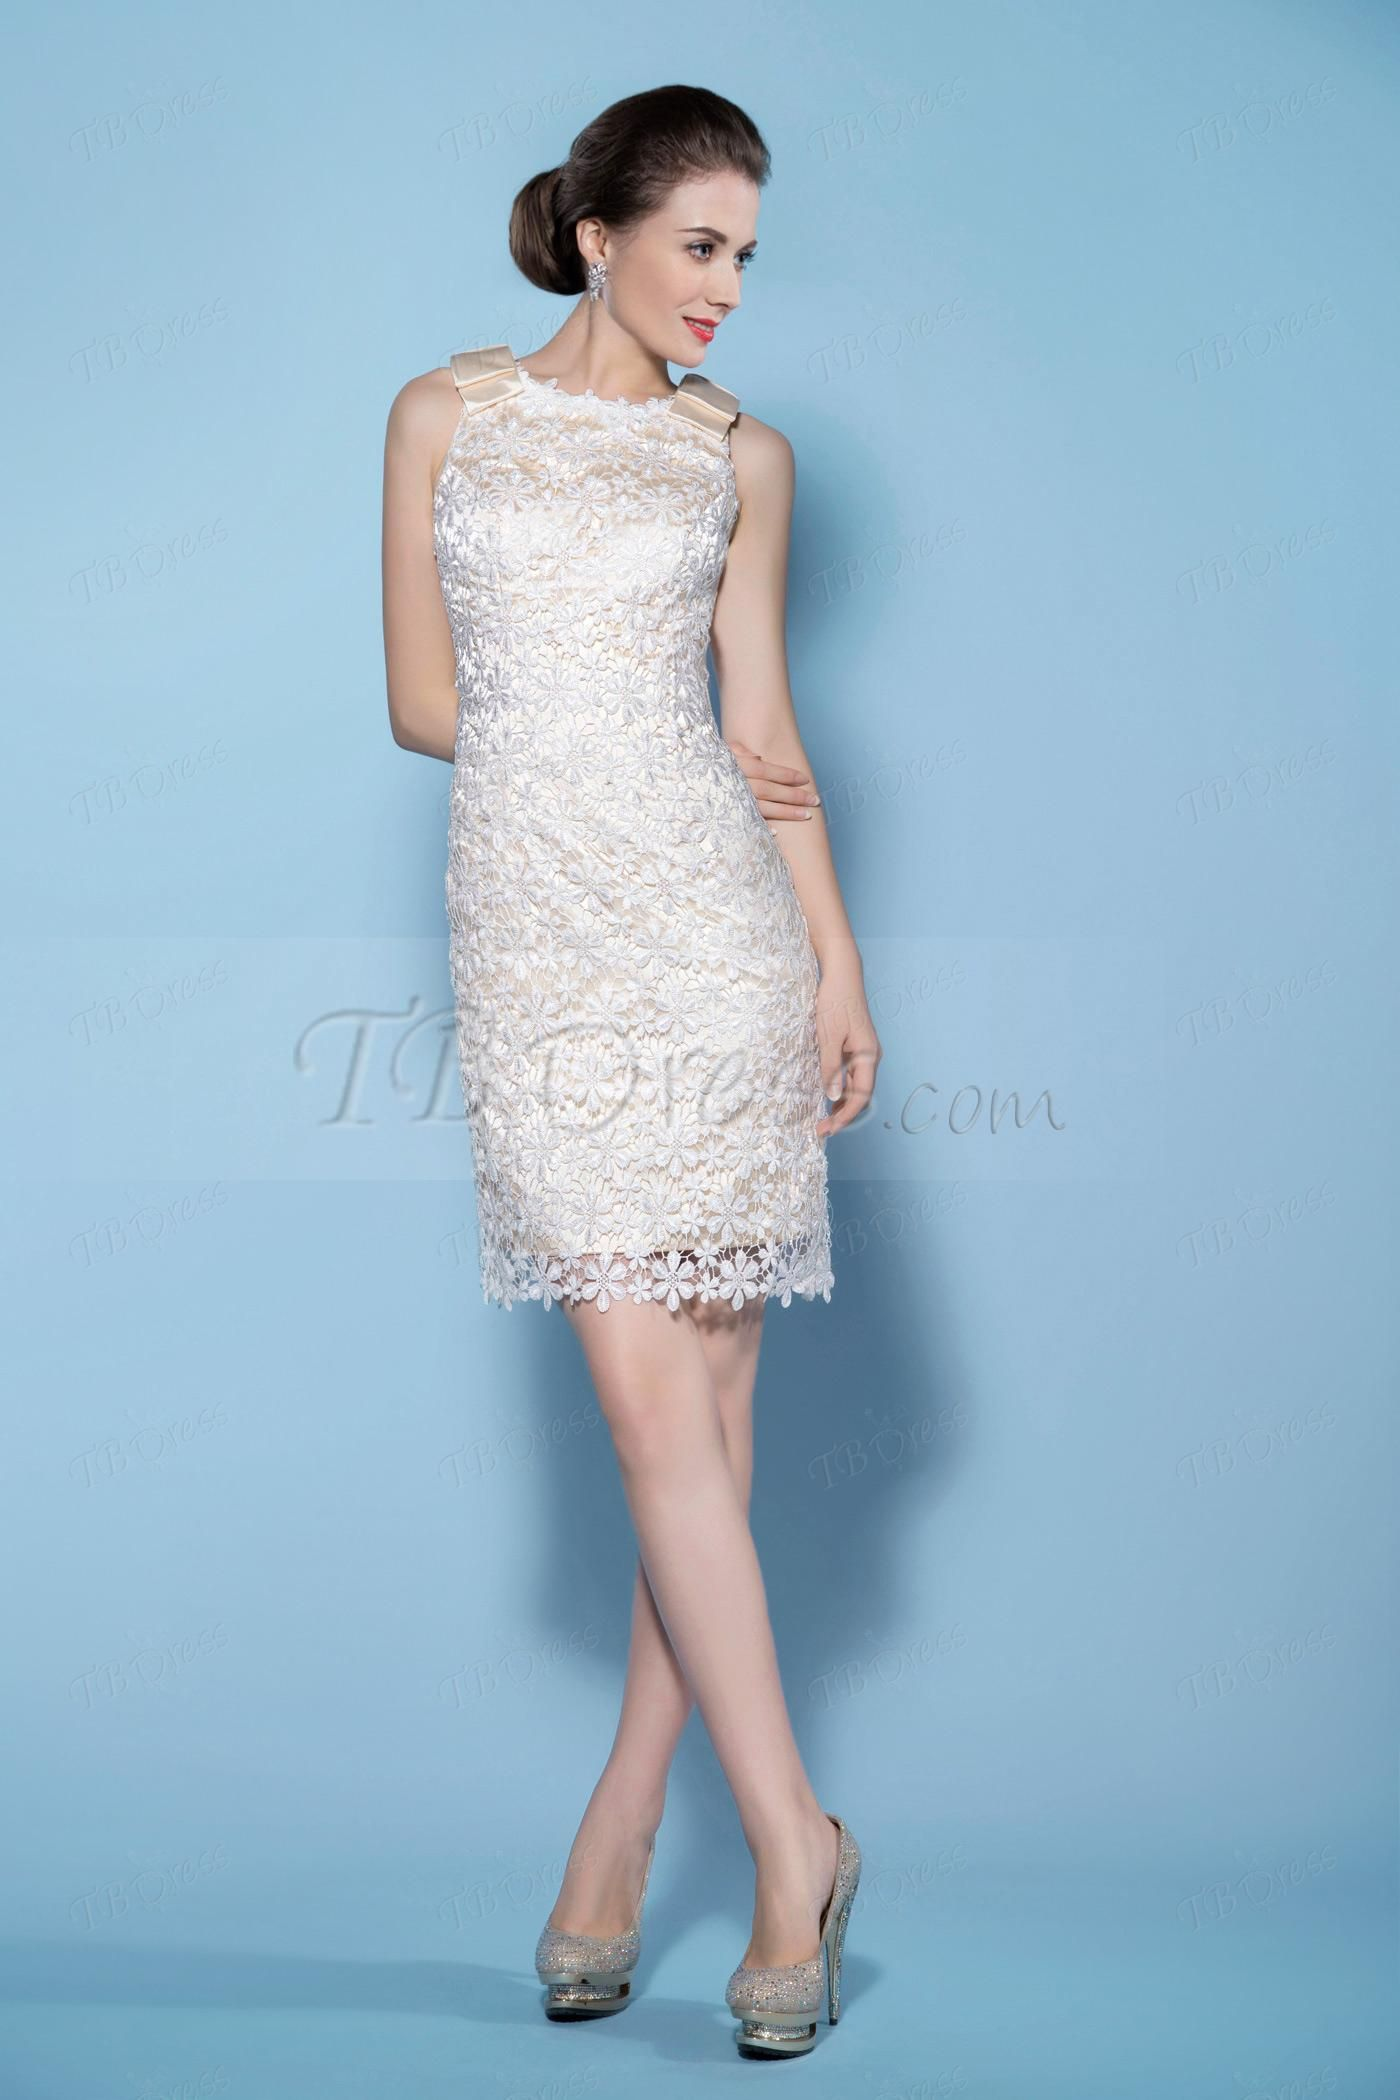 Sheath/Column Mini-Length Lace Short Wedding Dress | Lace wedding ...